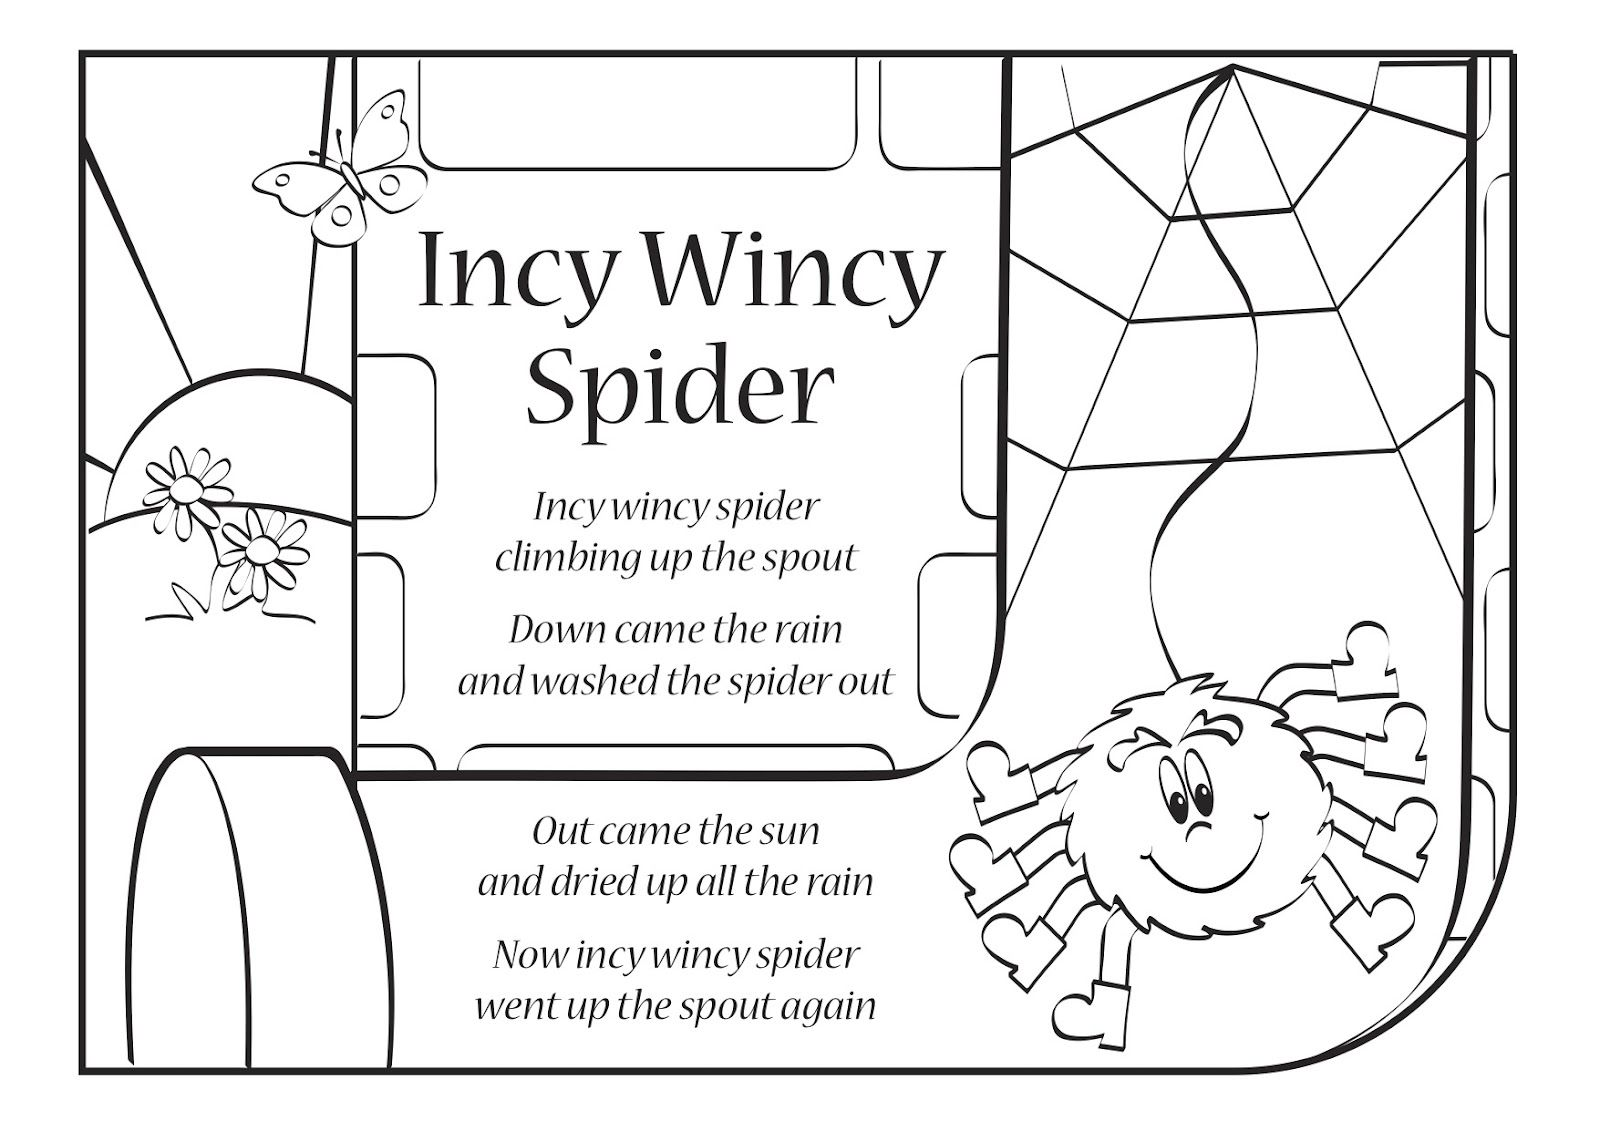 Itsy Bitsy Spider Also Known As Incy Wincy Spider Is A Popular Nursery Rhyme That Describes The Adventure Nursery Rhymes Activities Nursery Rhymes Rhymes [ 1131 x 1600 Pixel ]